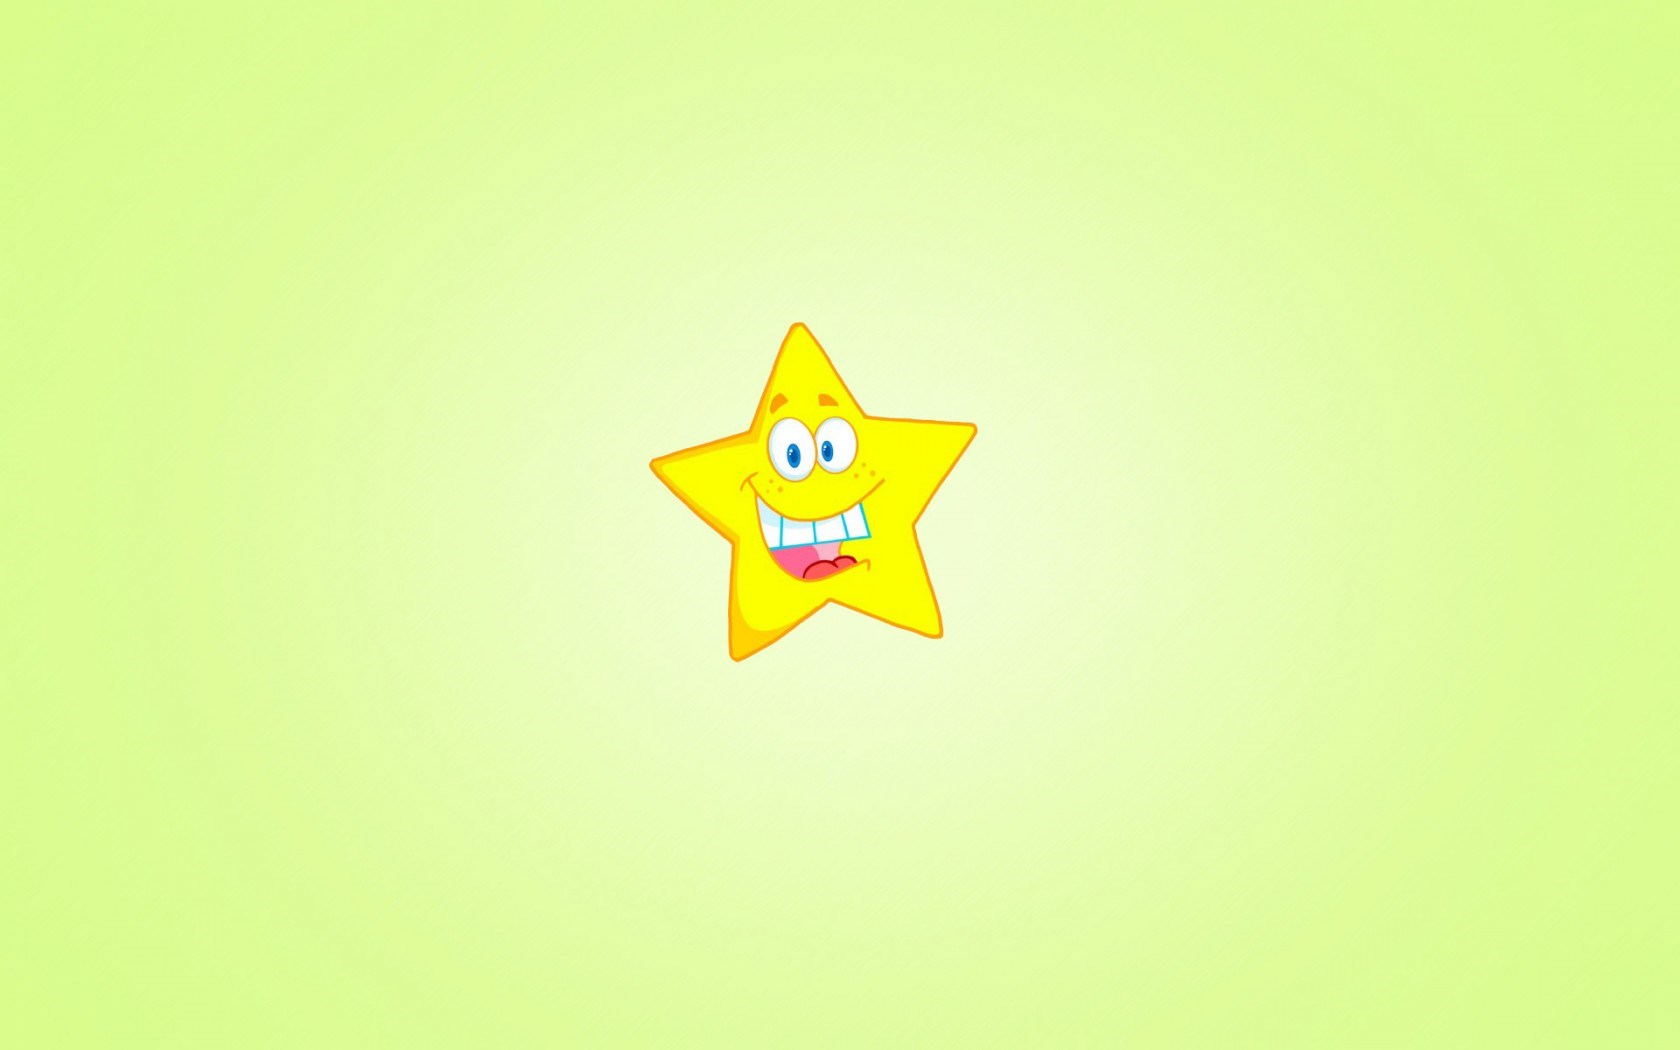 Star Yellow Smile Minimalism